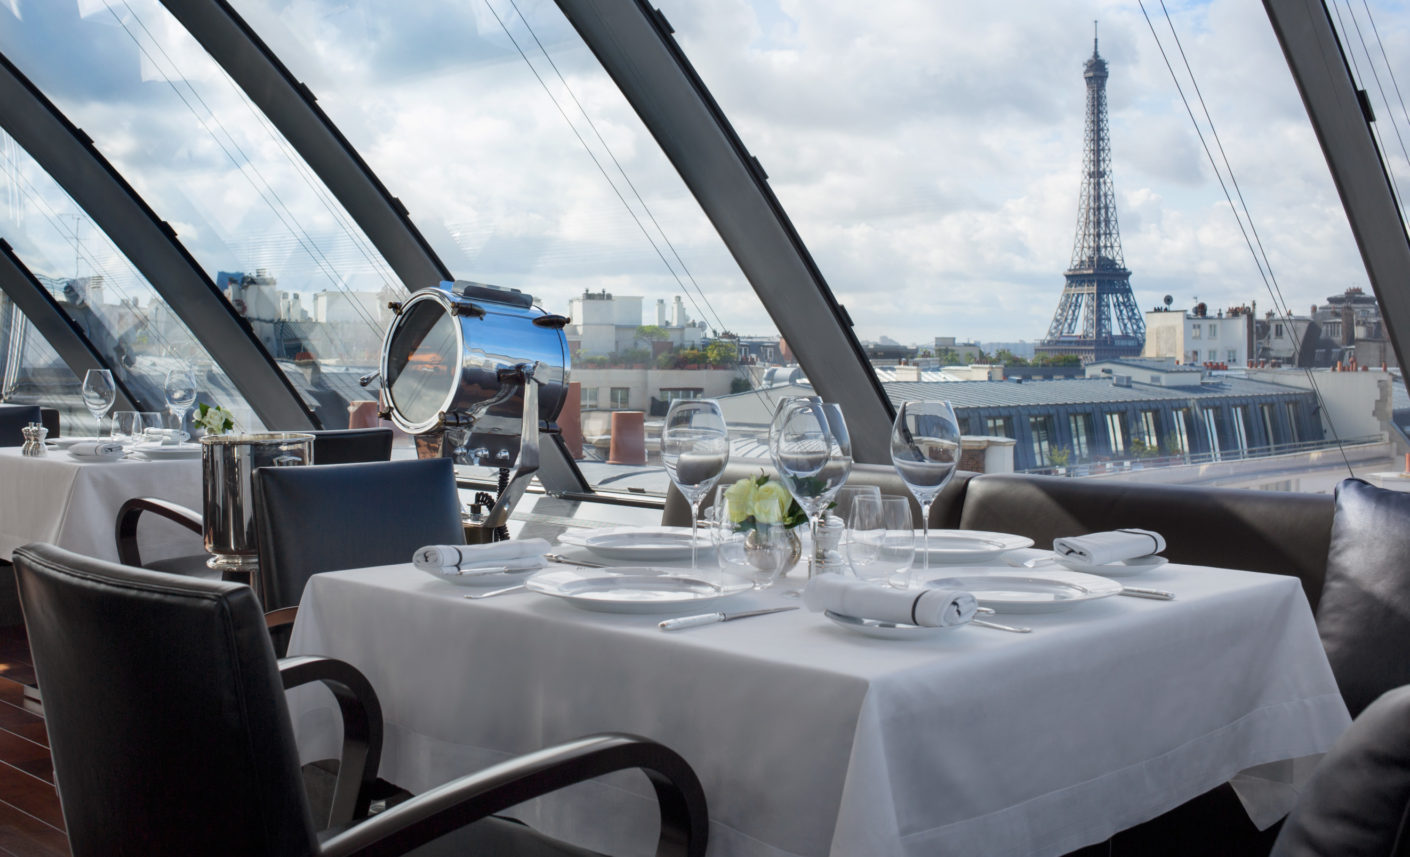 The Grand Hotel offers a panoramic view of the local sights in the French capital.